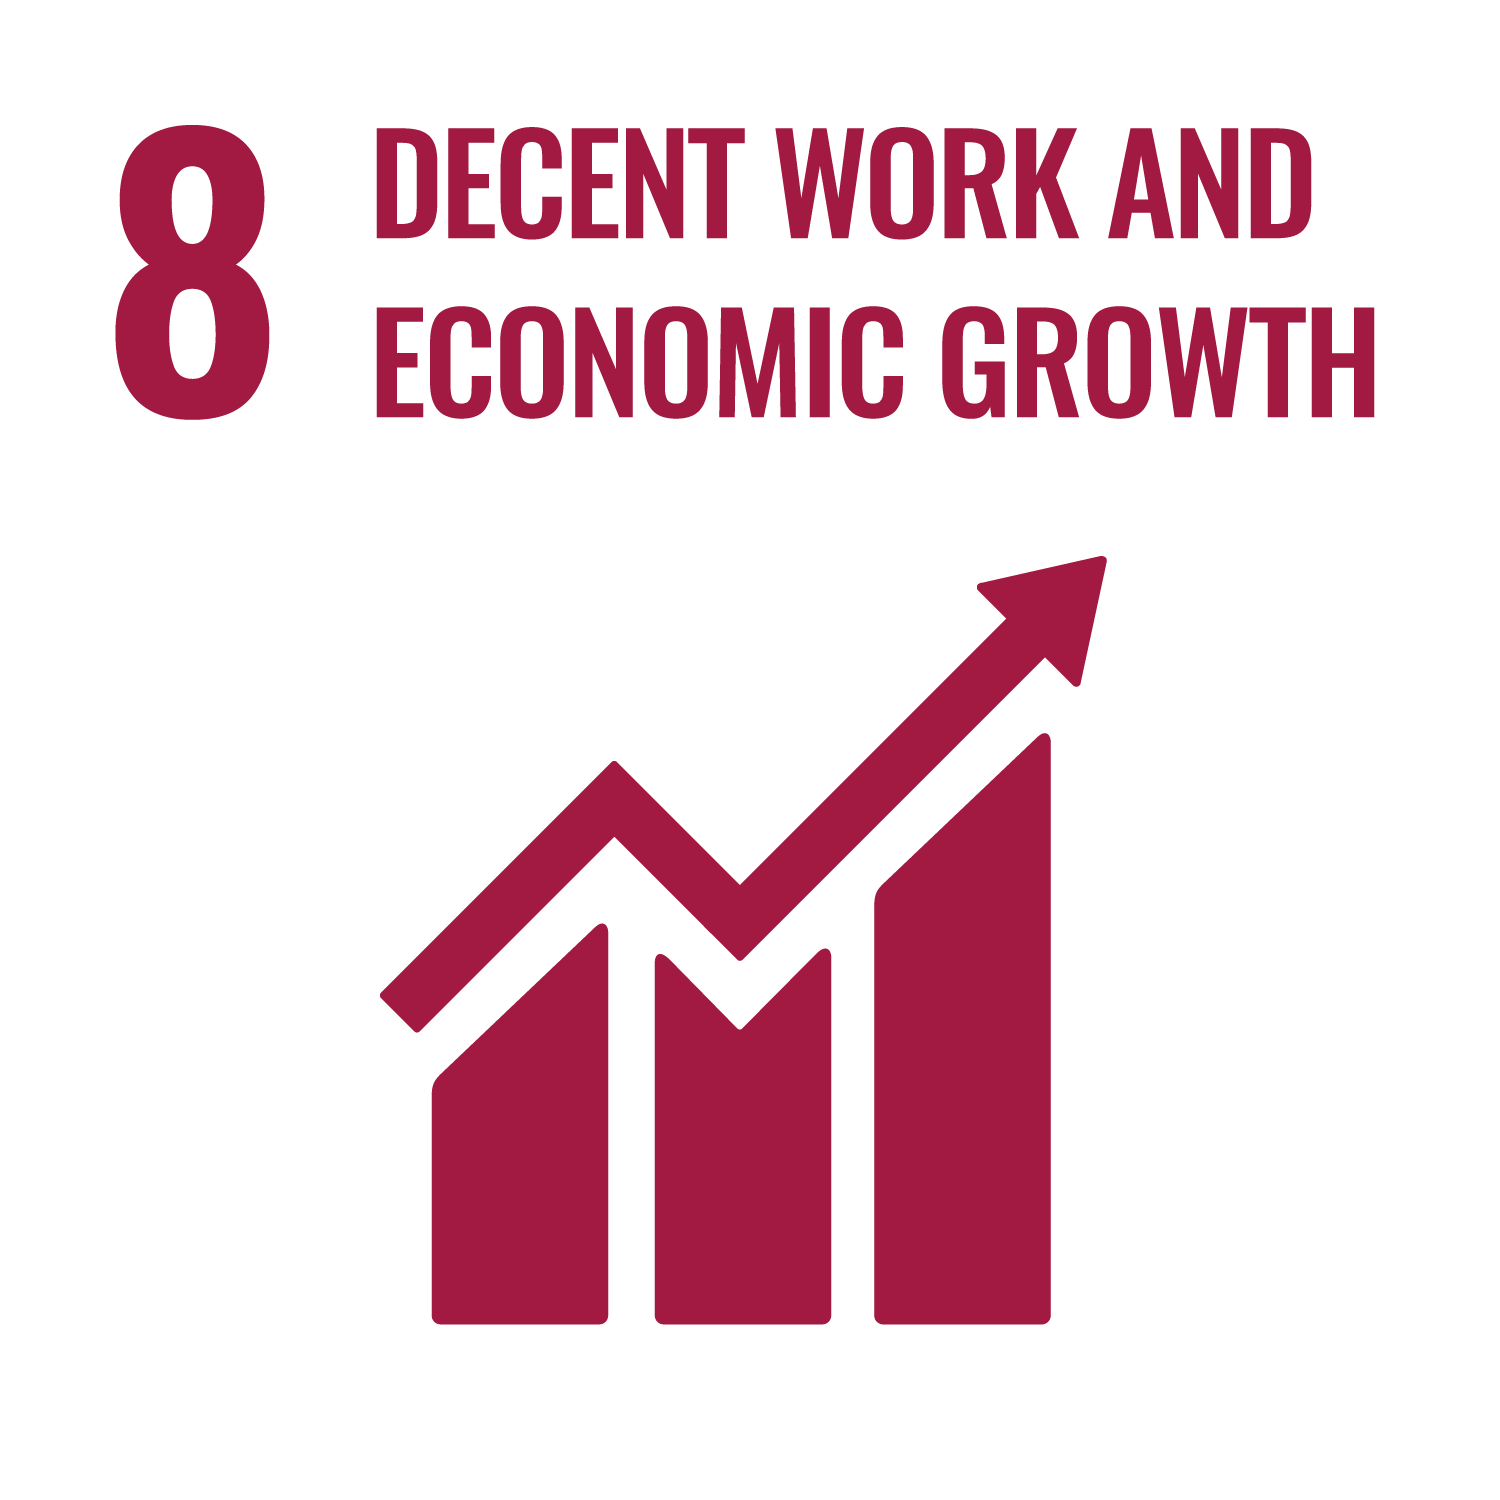 (8) Decent Work and Economic Growth